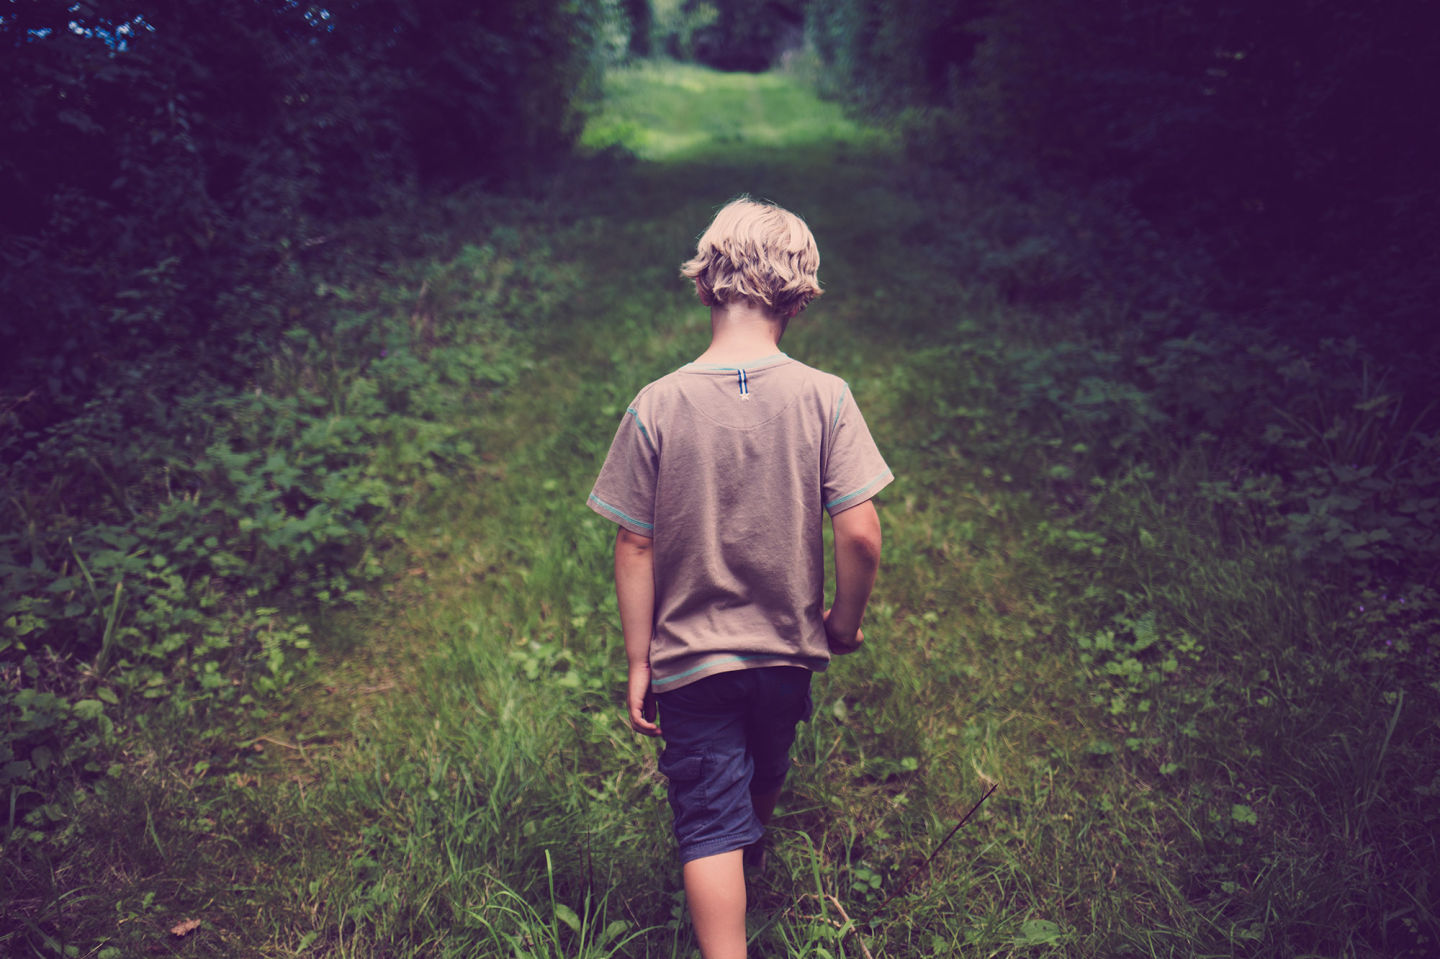 Understanding the myths about boys and the boy code